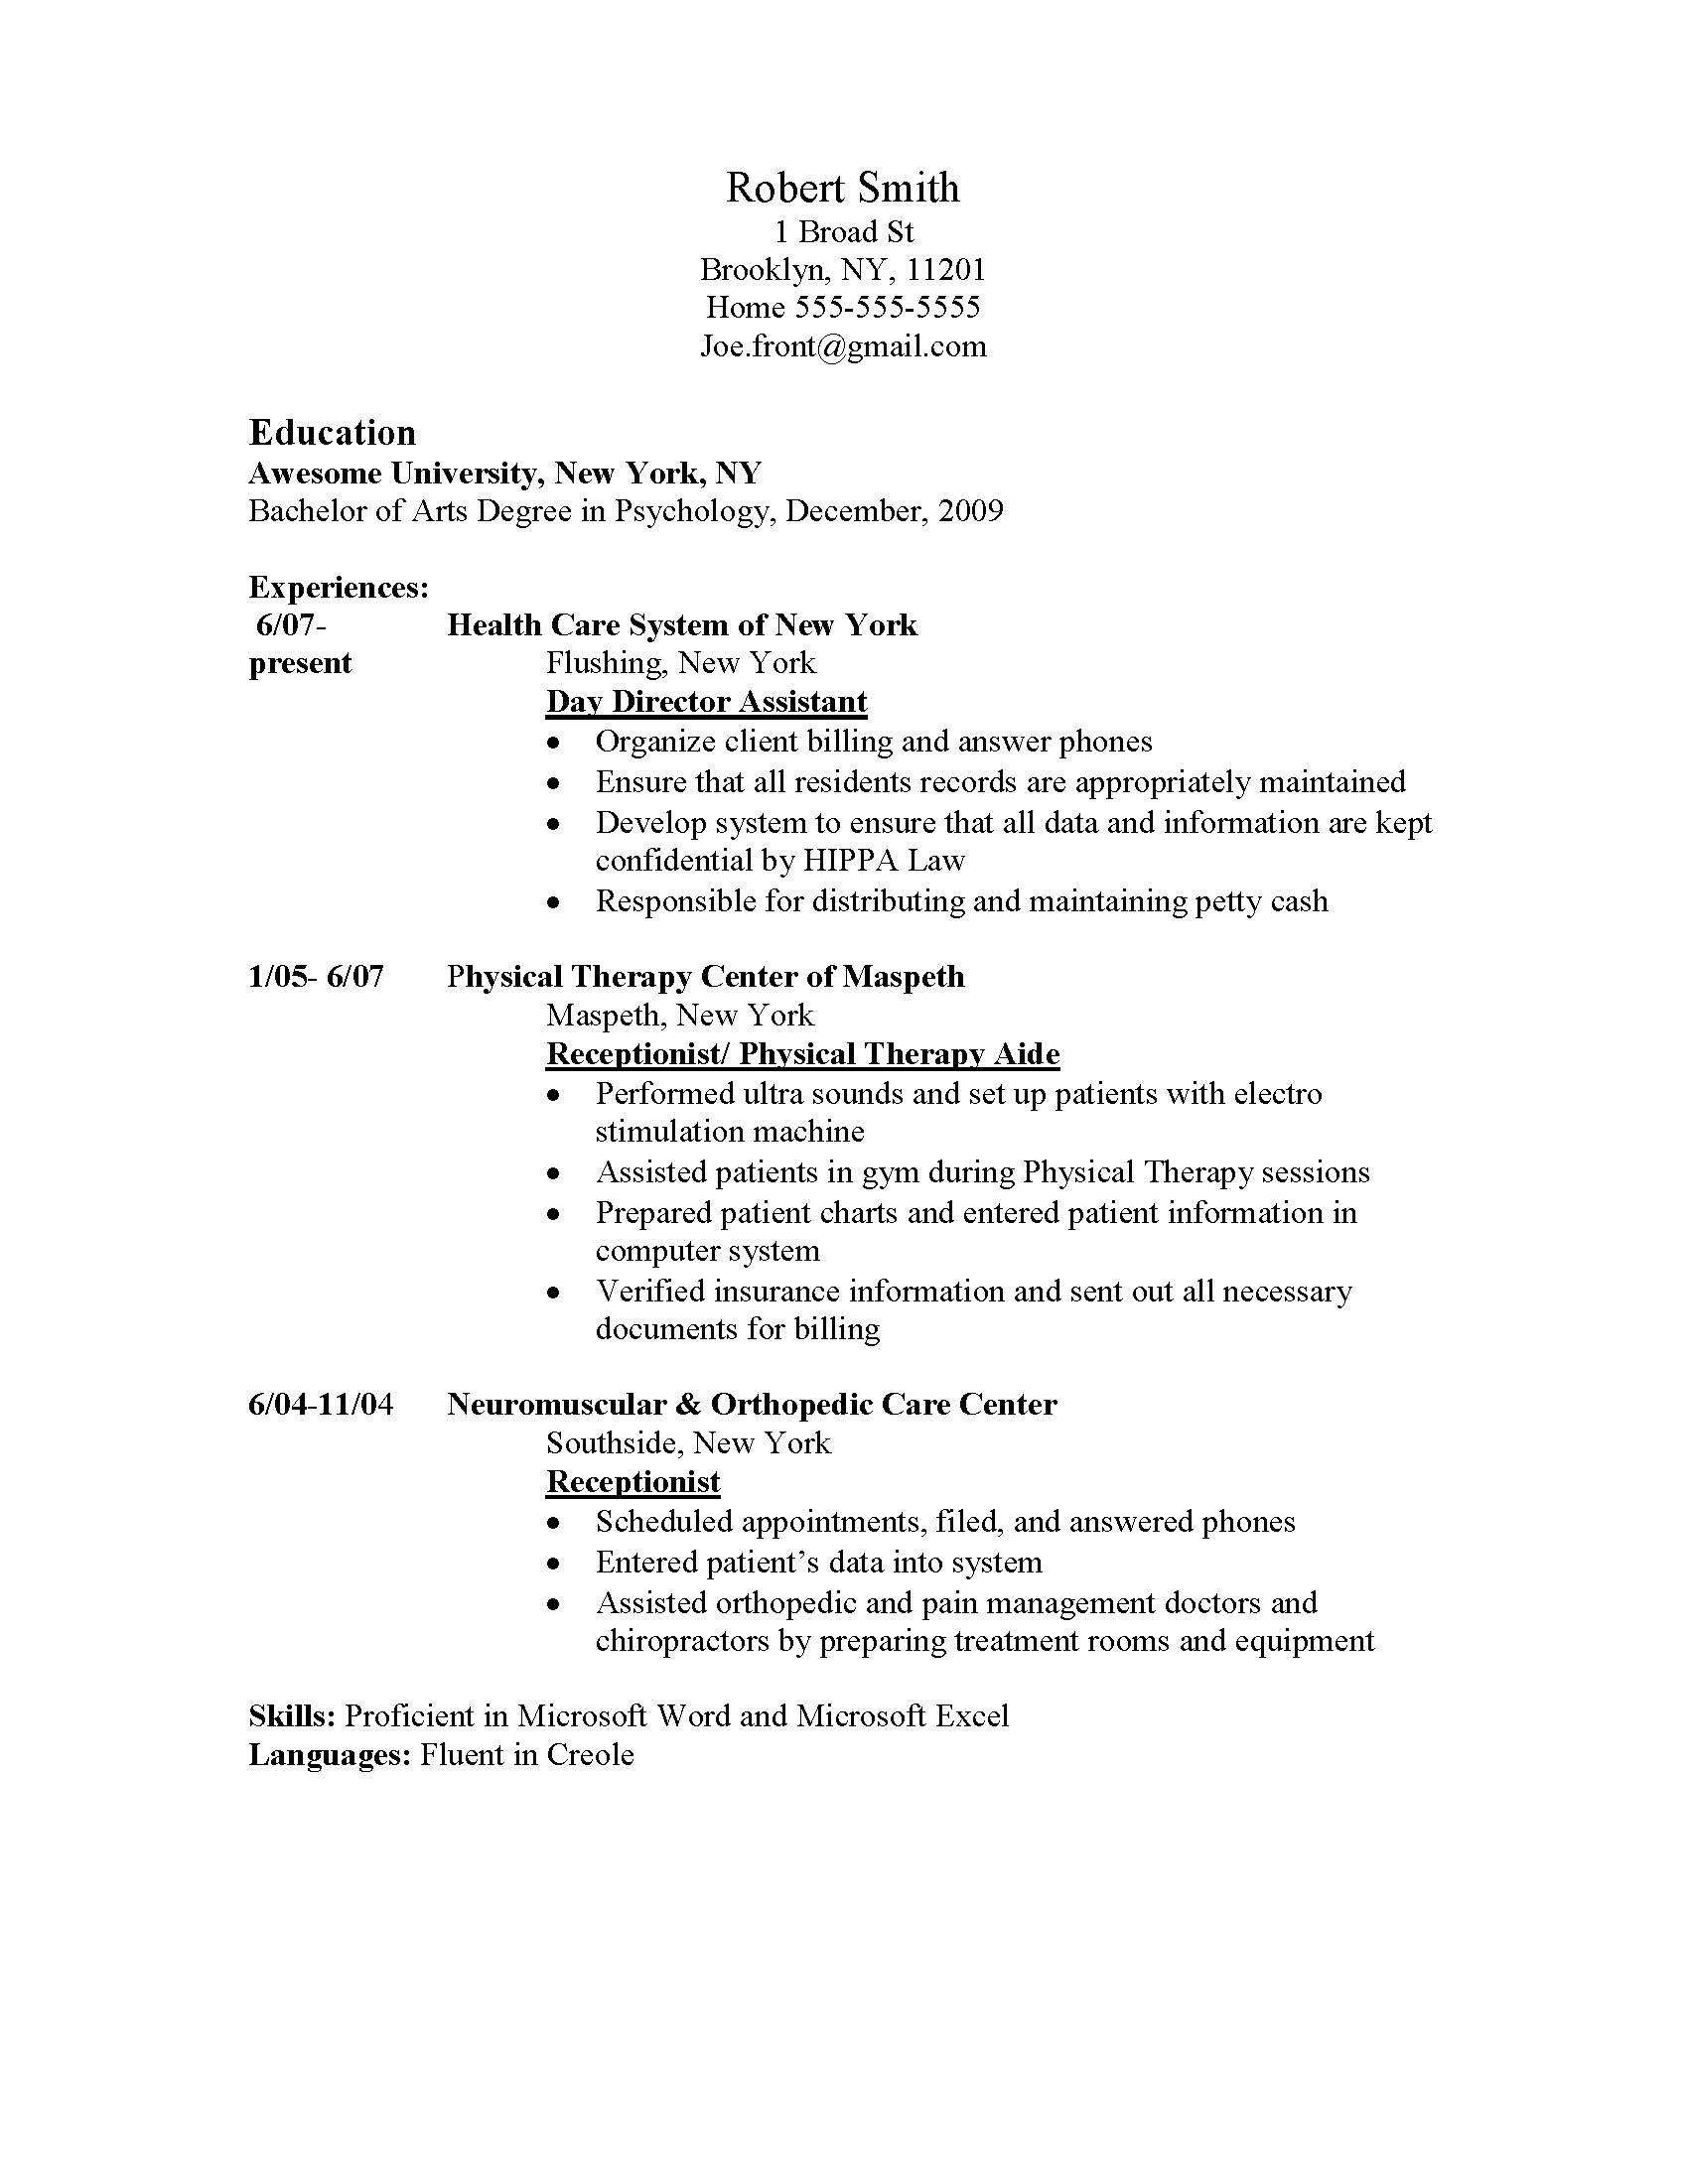 Resume Strengths Examples Key Strengths List For Resume. Planning For  Integrating Teaching .  Key Resume Words